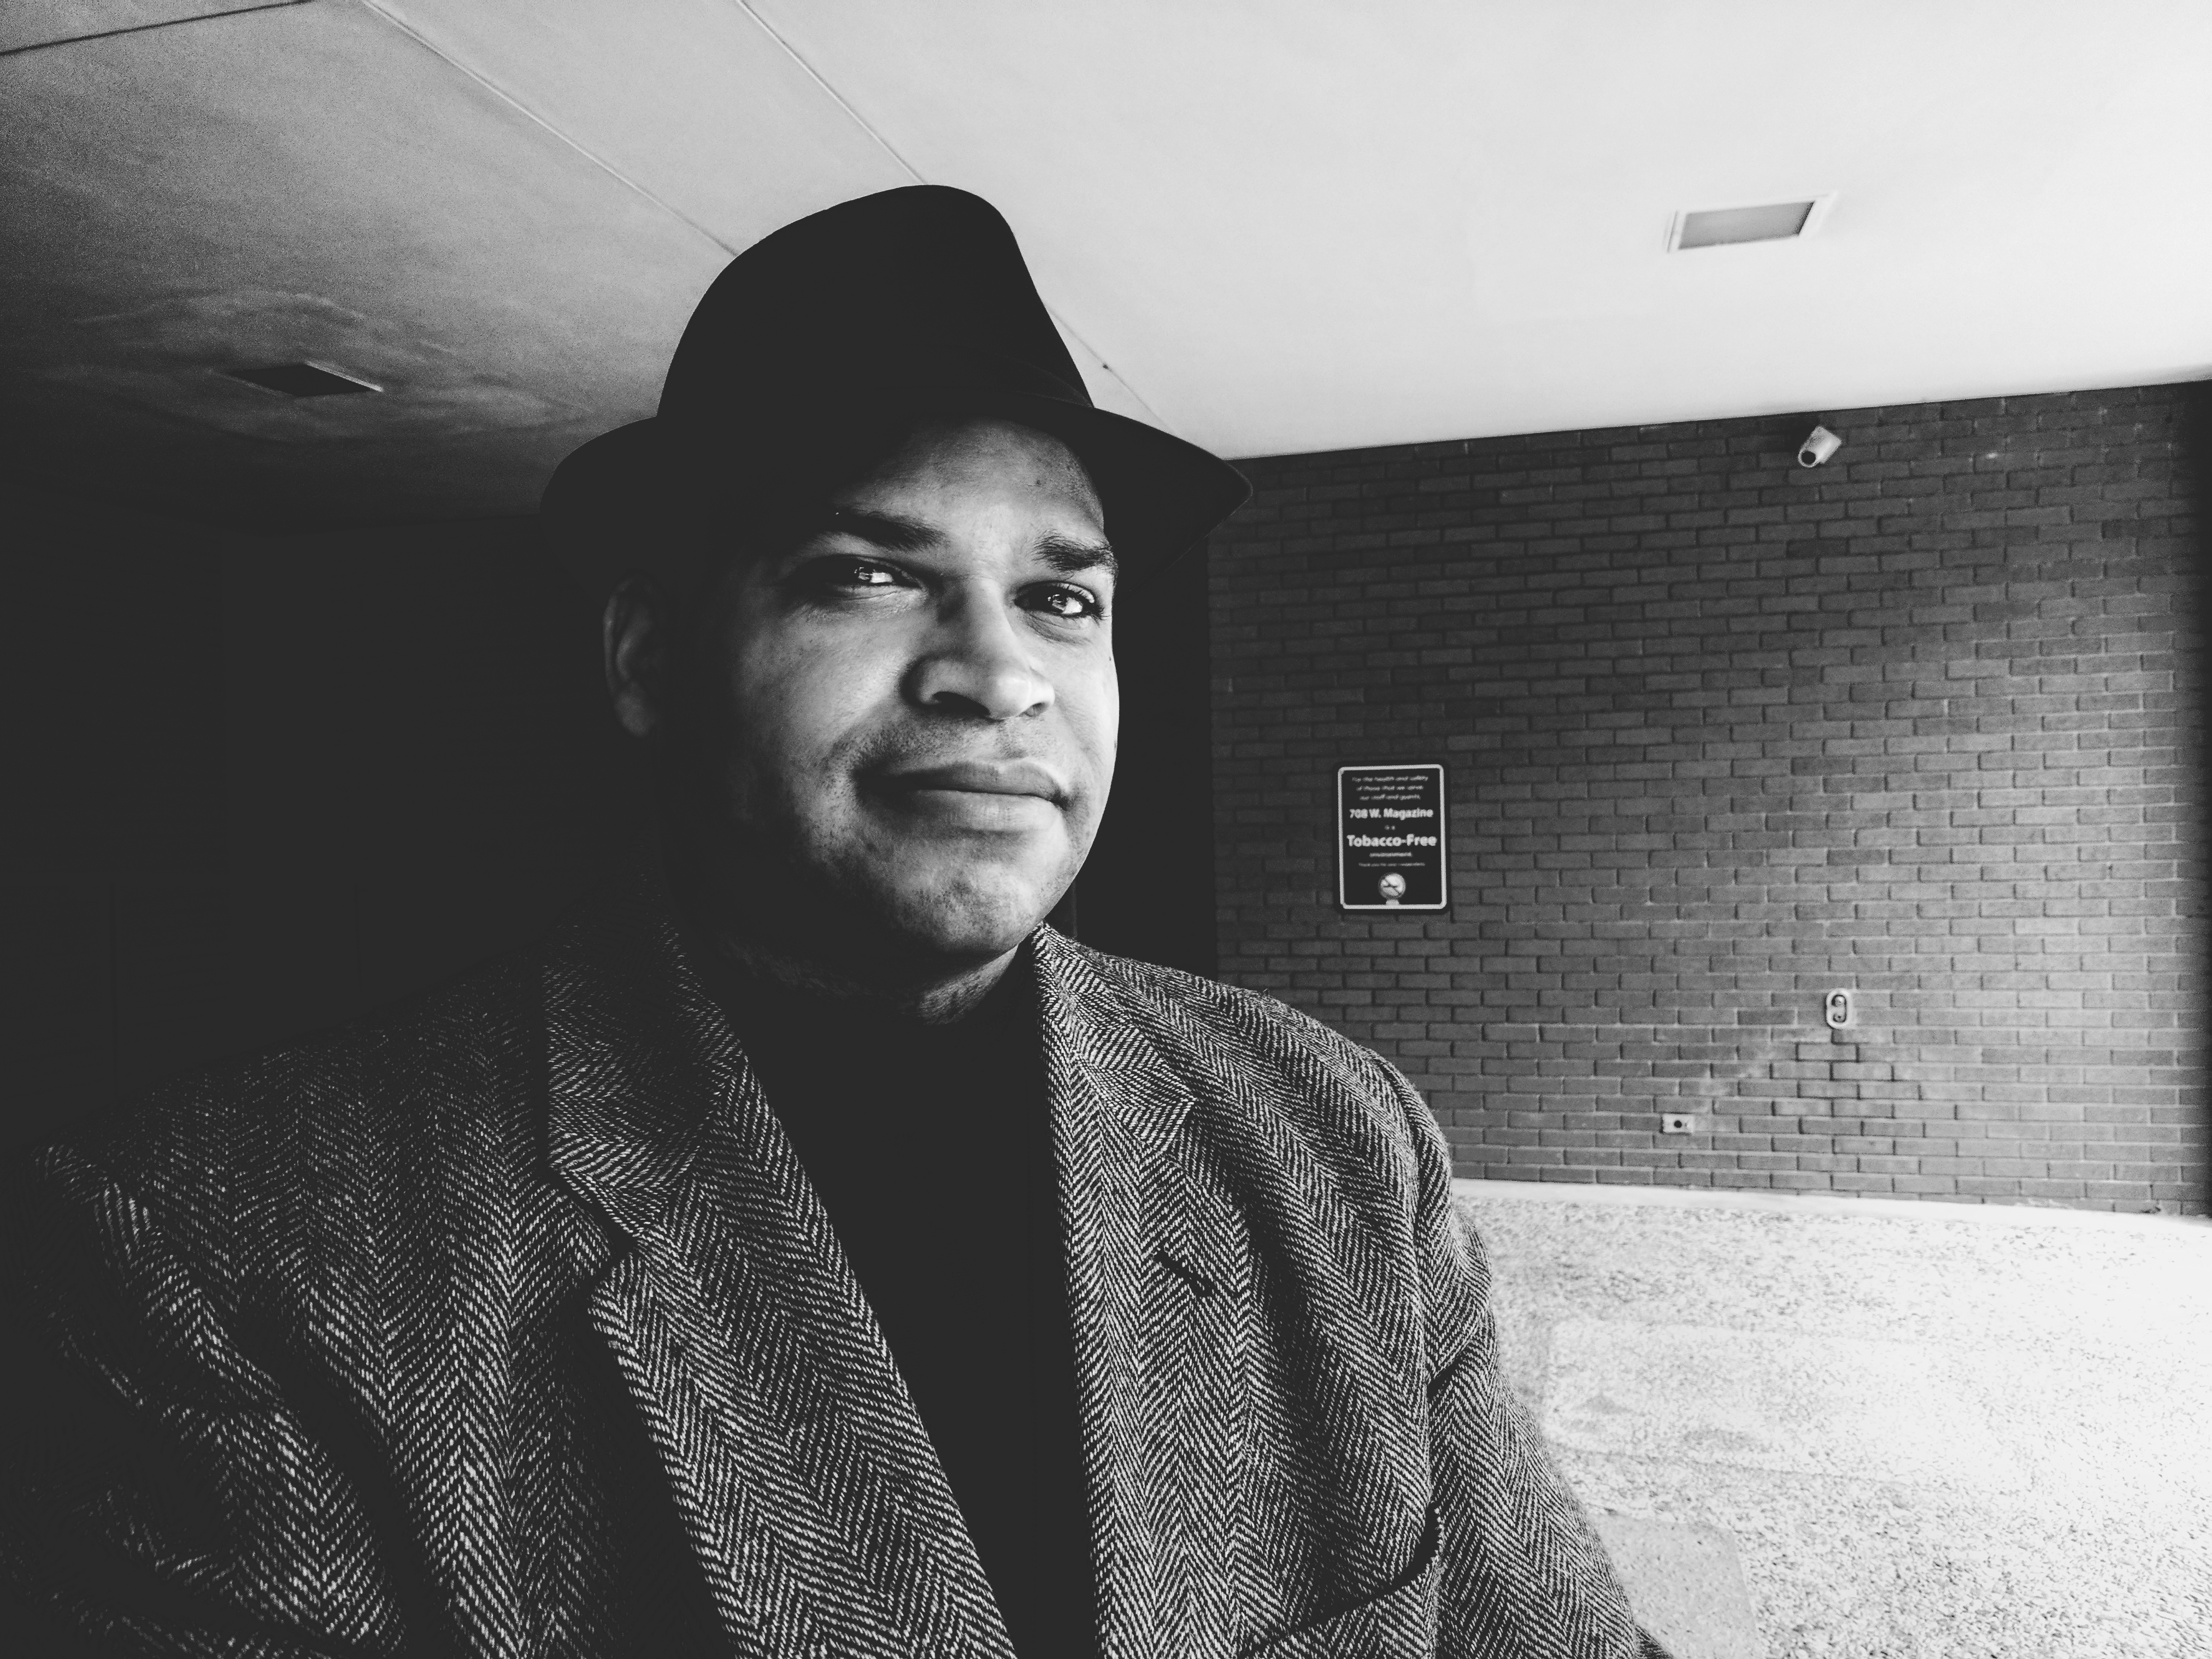 Dante Murray has been in recovery from schizophrenia for over 10 years. Since his first psychotic break, he's gone on to become the vice president of the Louisville chapter of the National Alliance on Mental Illness.